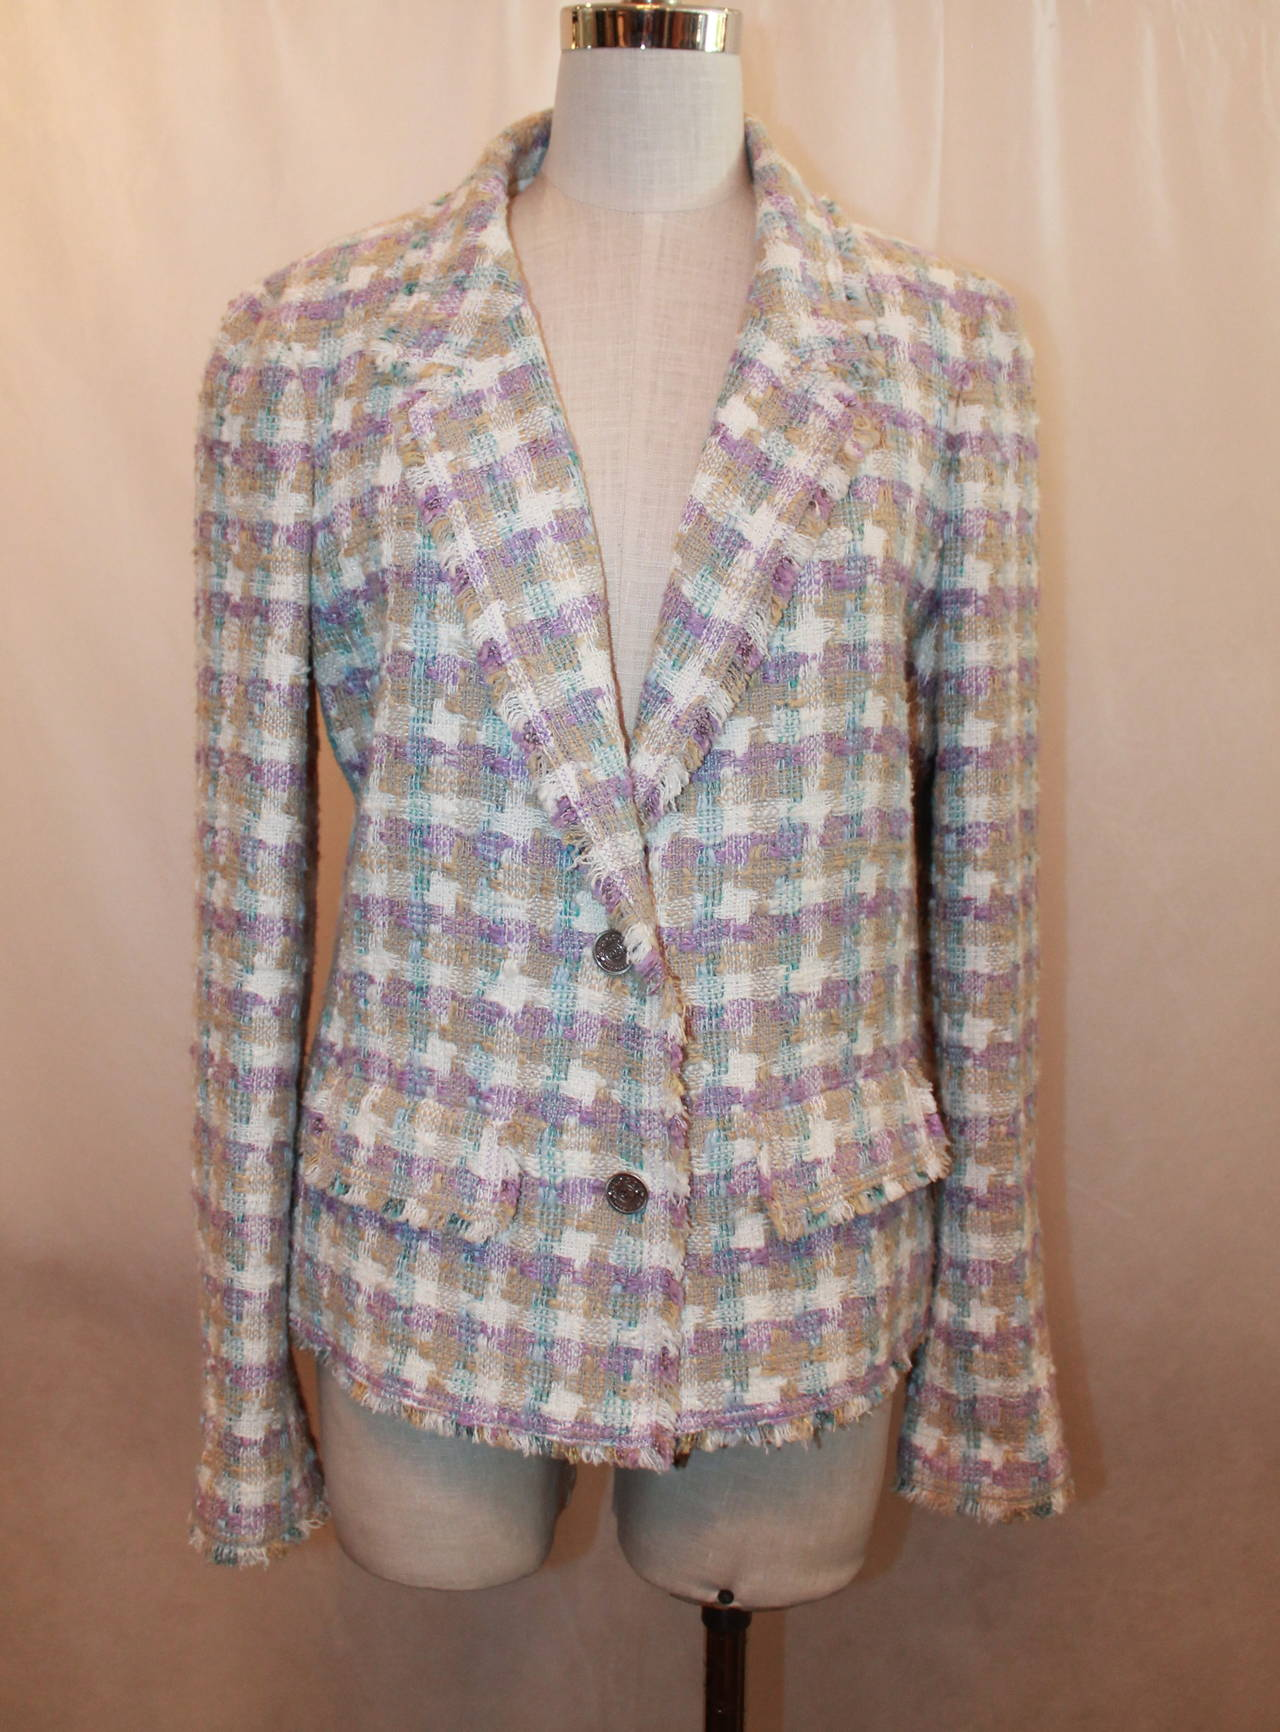 2005 Chanel White, Beige, Purple, and Blue Pastel Tweed Jacket with Two Front Pockets (Closed) and Coco Mademoiselle Button.  Fabric: 65 % Cotton 14 % Linen 14 % Viscose/Rayon 5 % Silk 2 % Nylon Lining: 96 % Silk 4 %